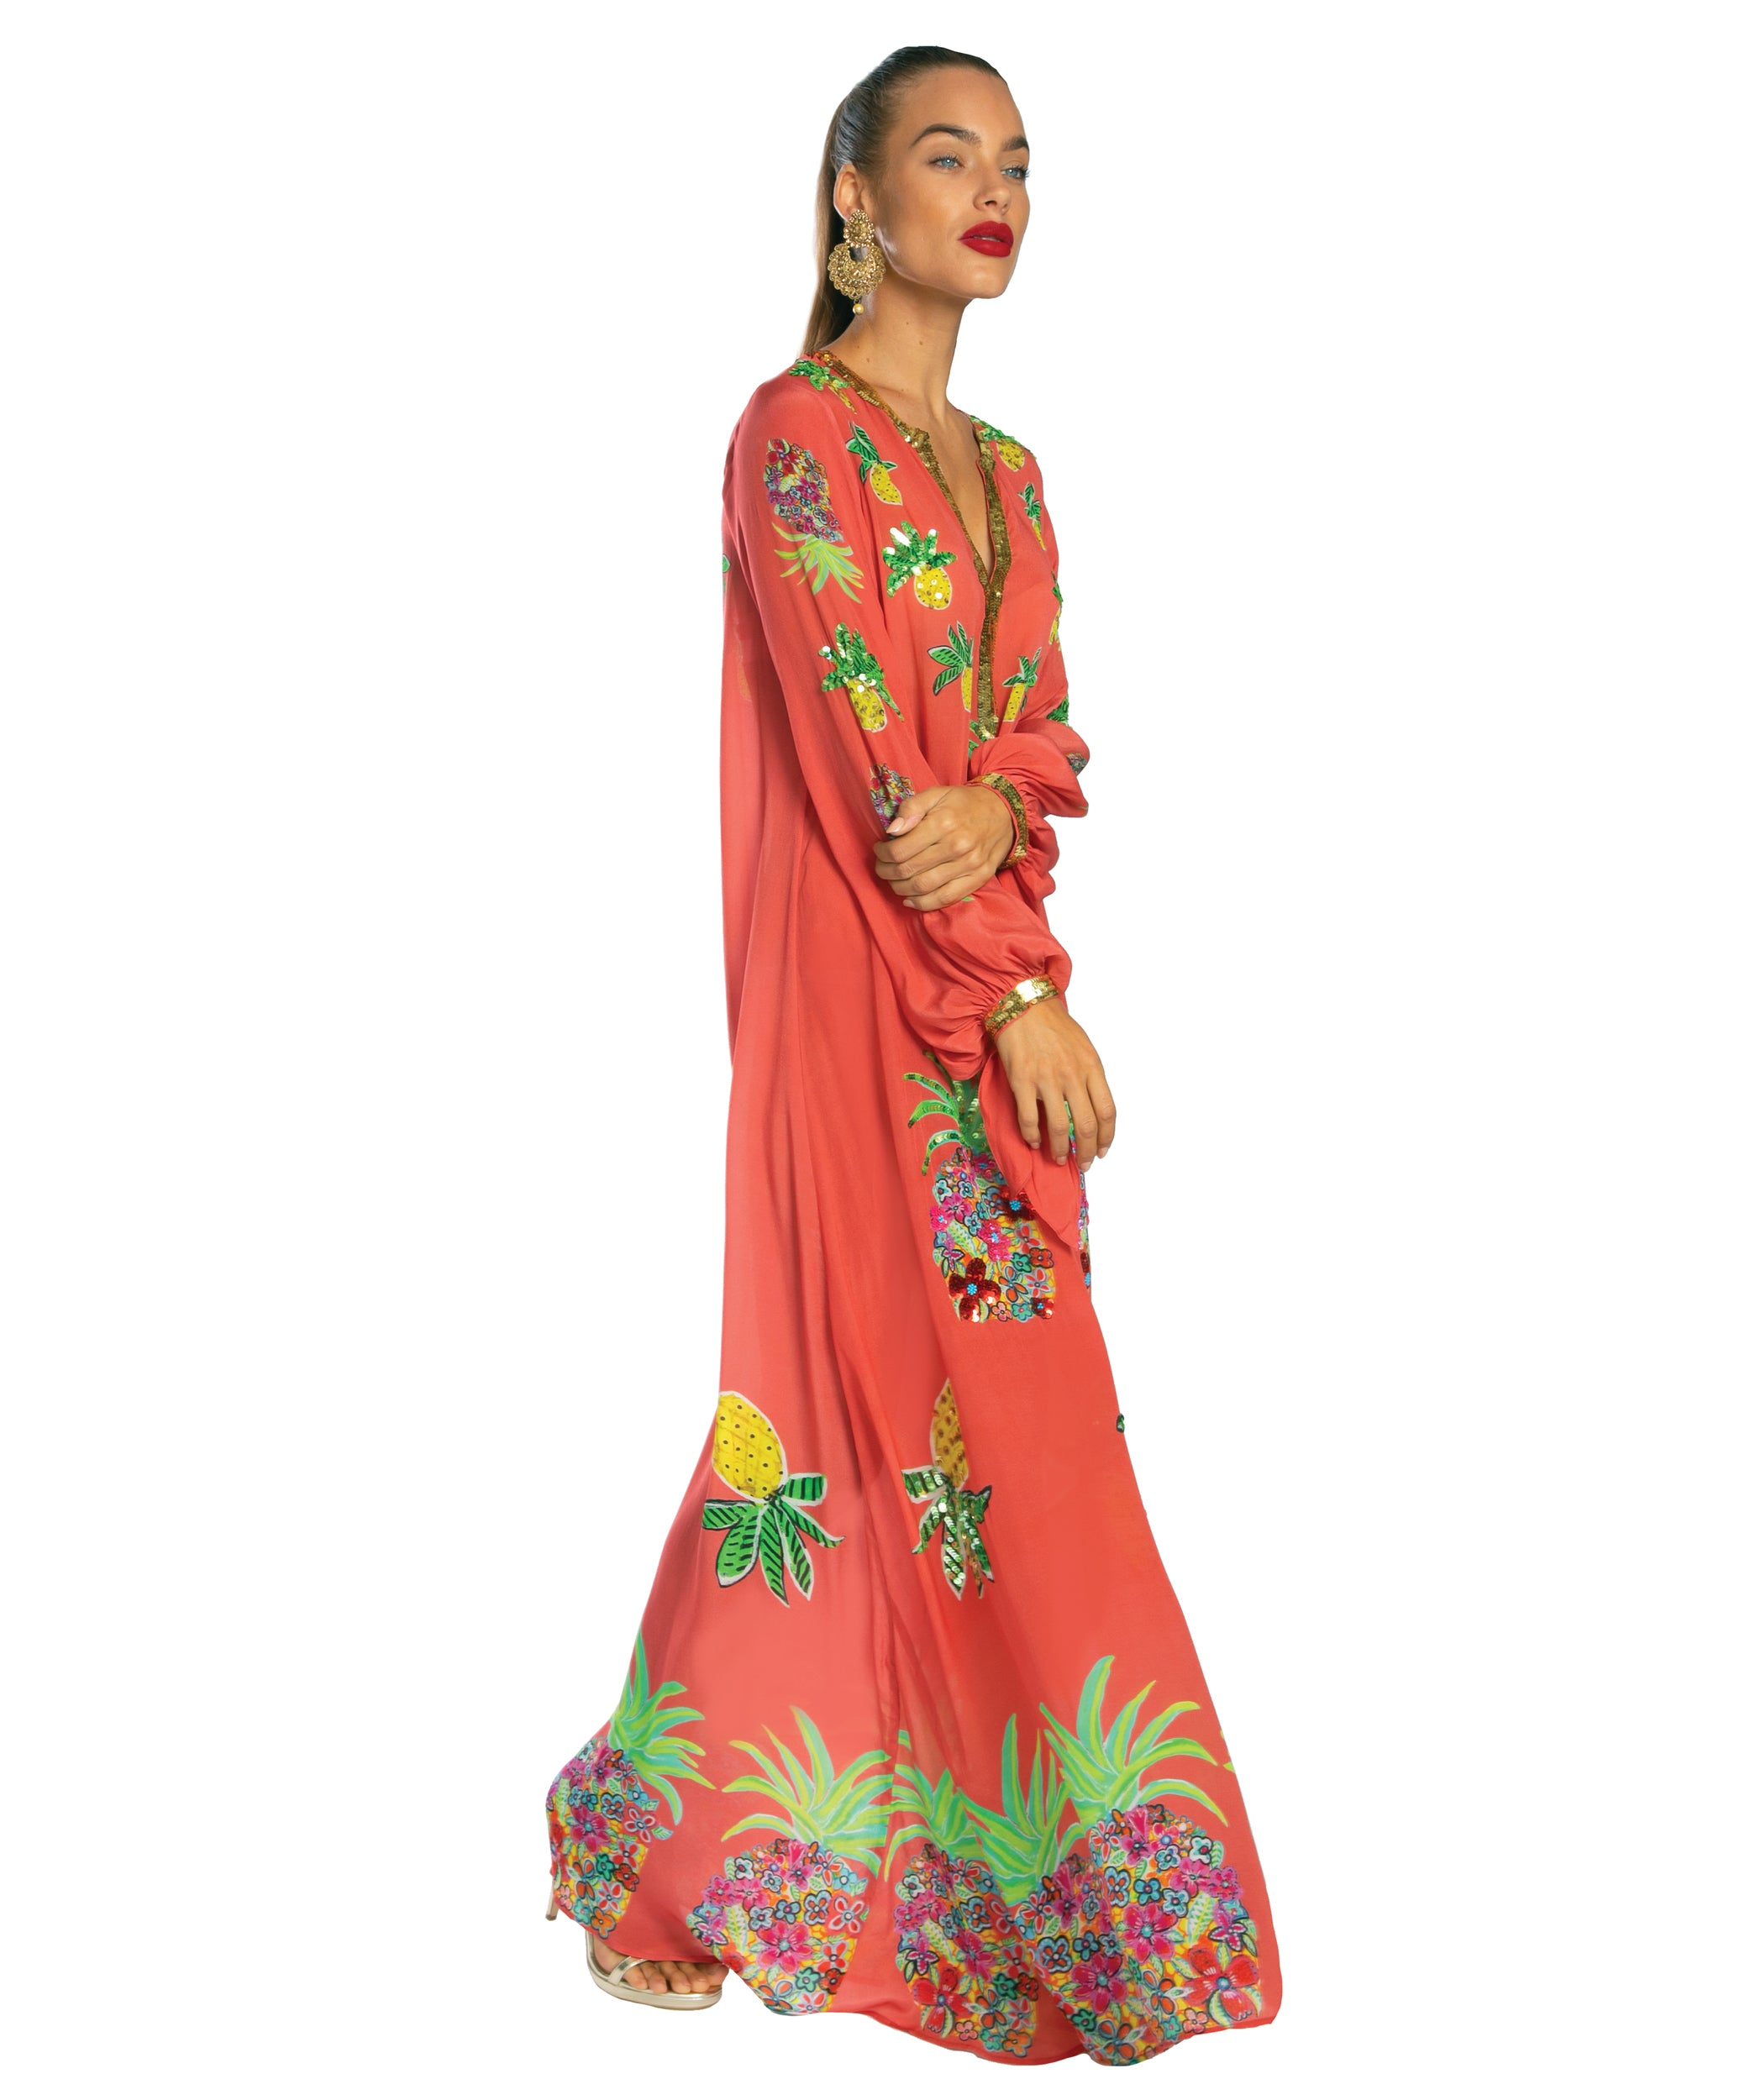 The Pineapple Floral Kaftan by Bonita Kaftans